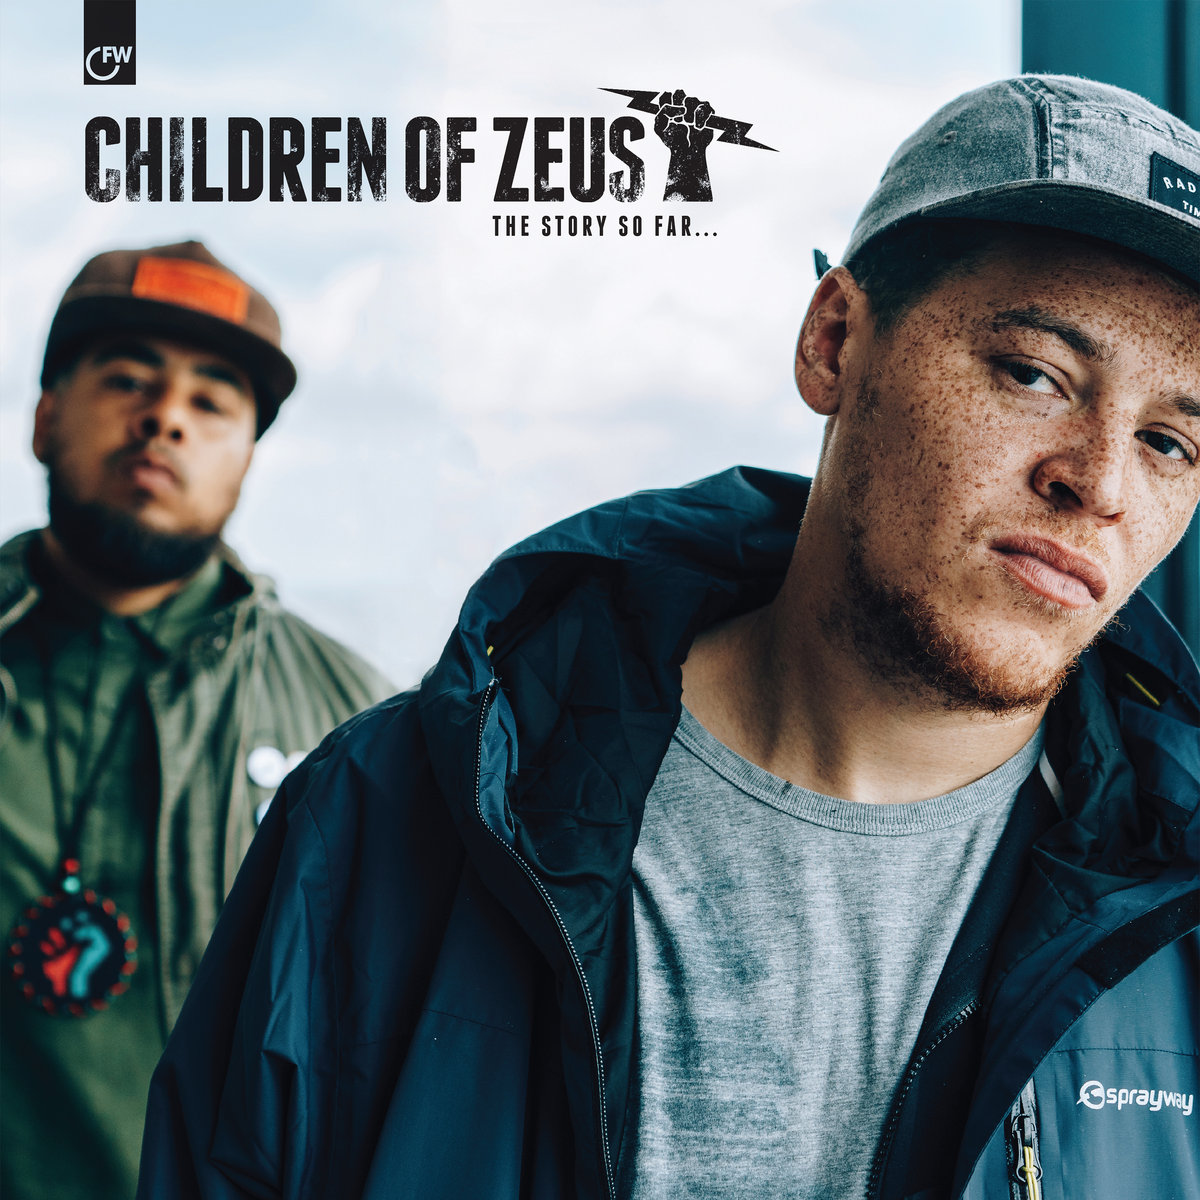 CHILDREN OF ZEUS - THE STORY SO FAR... (FIRST WORD RECORDS, 2017)